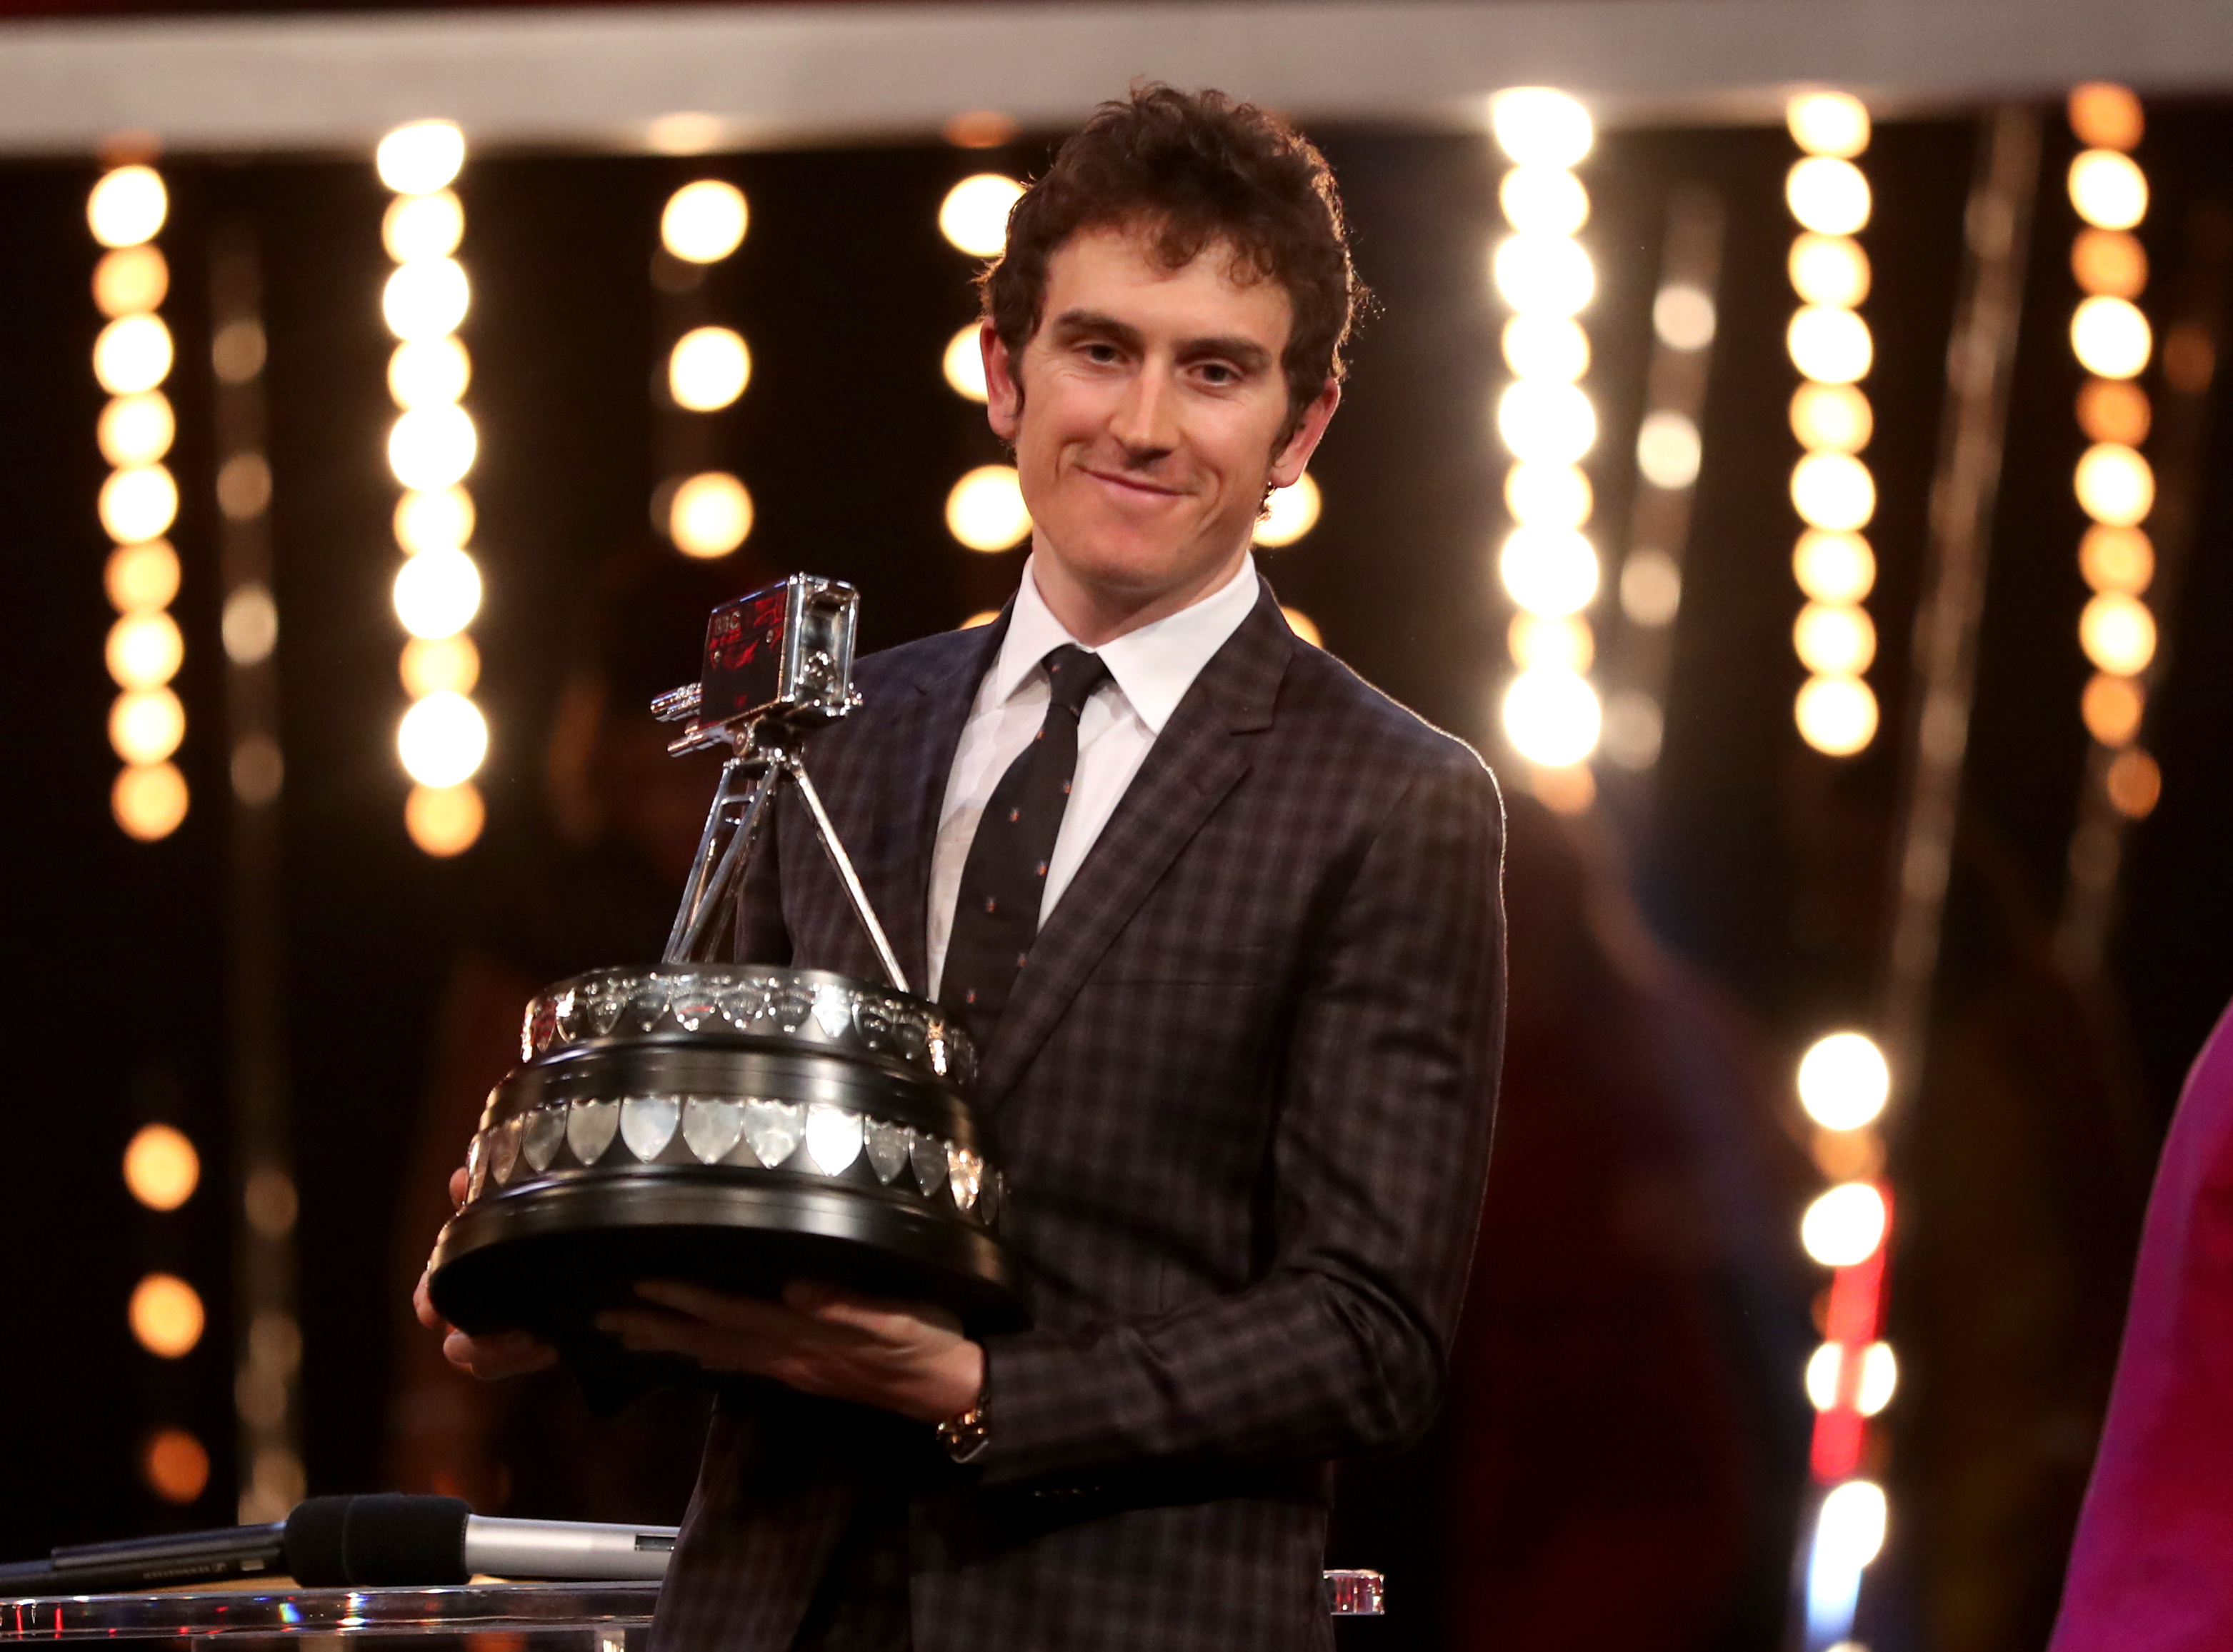 Geraint Thomas wins the BBC Sports Personality of the Year award